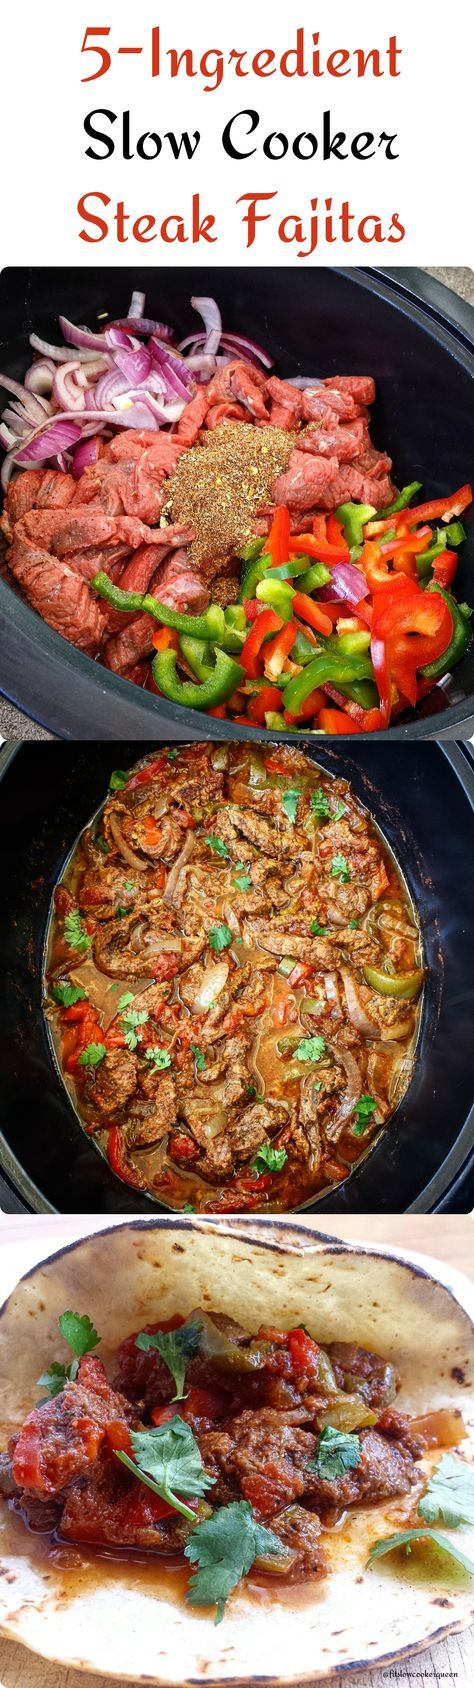 There are only 5-Ingredients in this flavorful slow cooker steak fajitas recipe. #crockpot #slowcooker